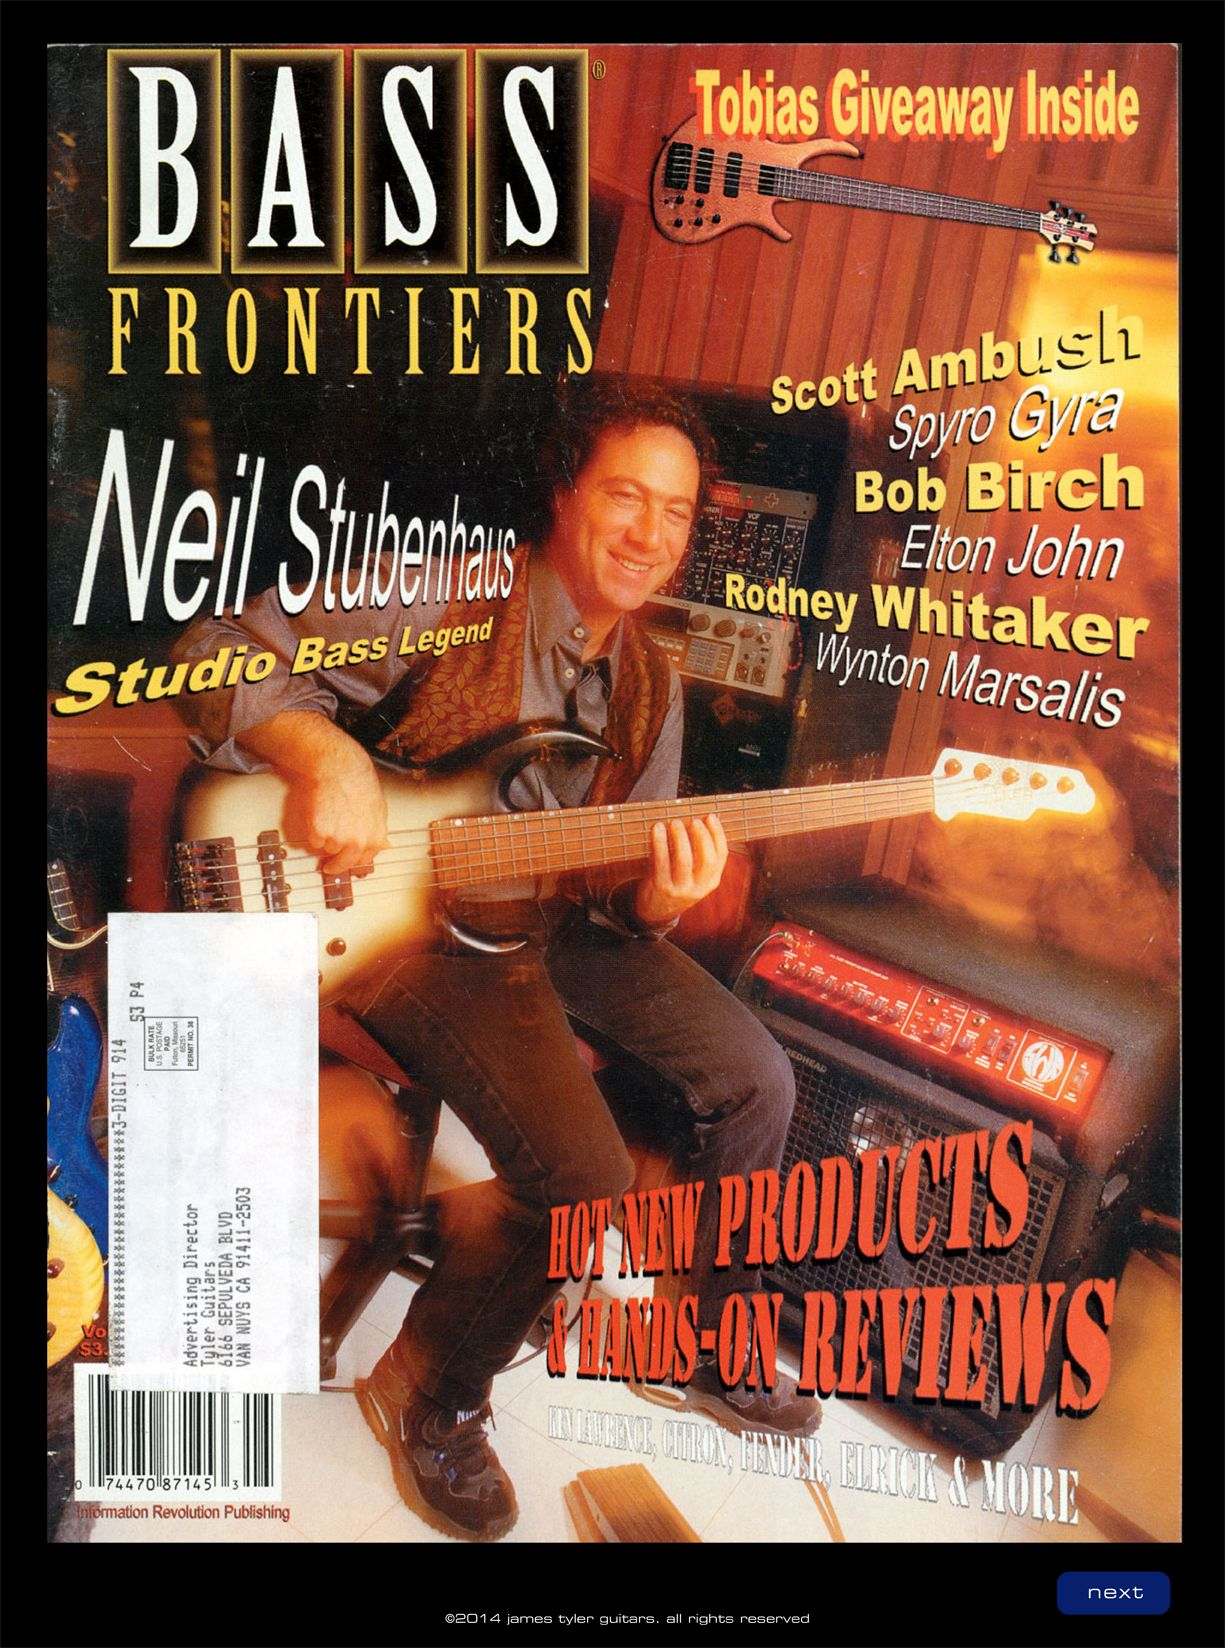 http://tylerguitars.com/?q=content/1998-bass-frontiers-magazine-page-01